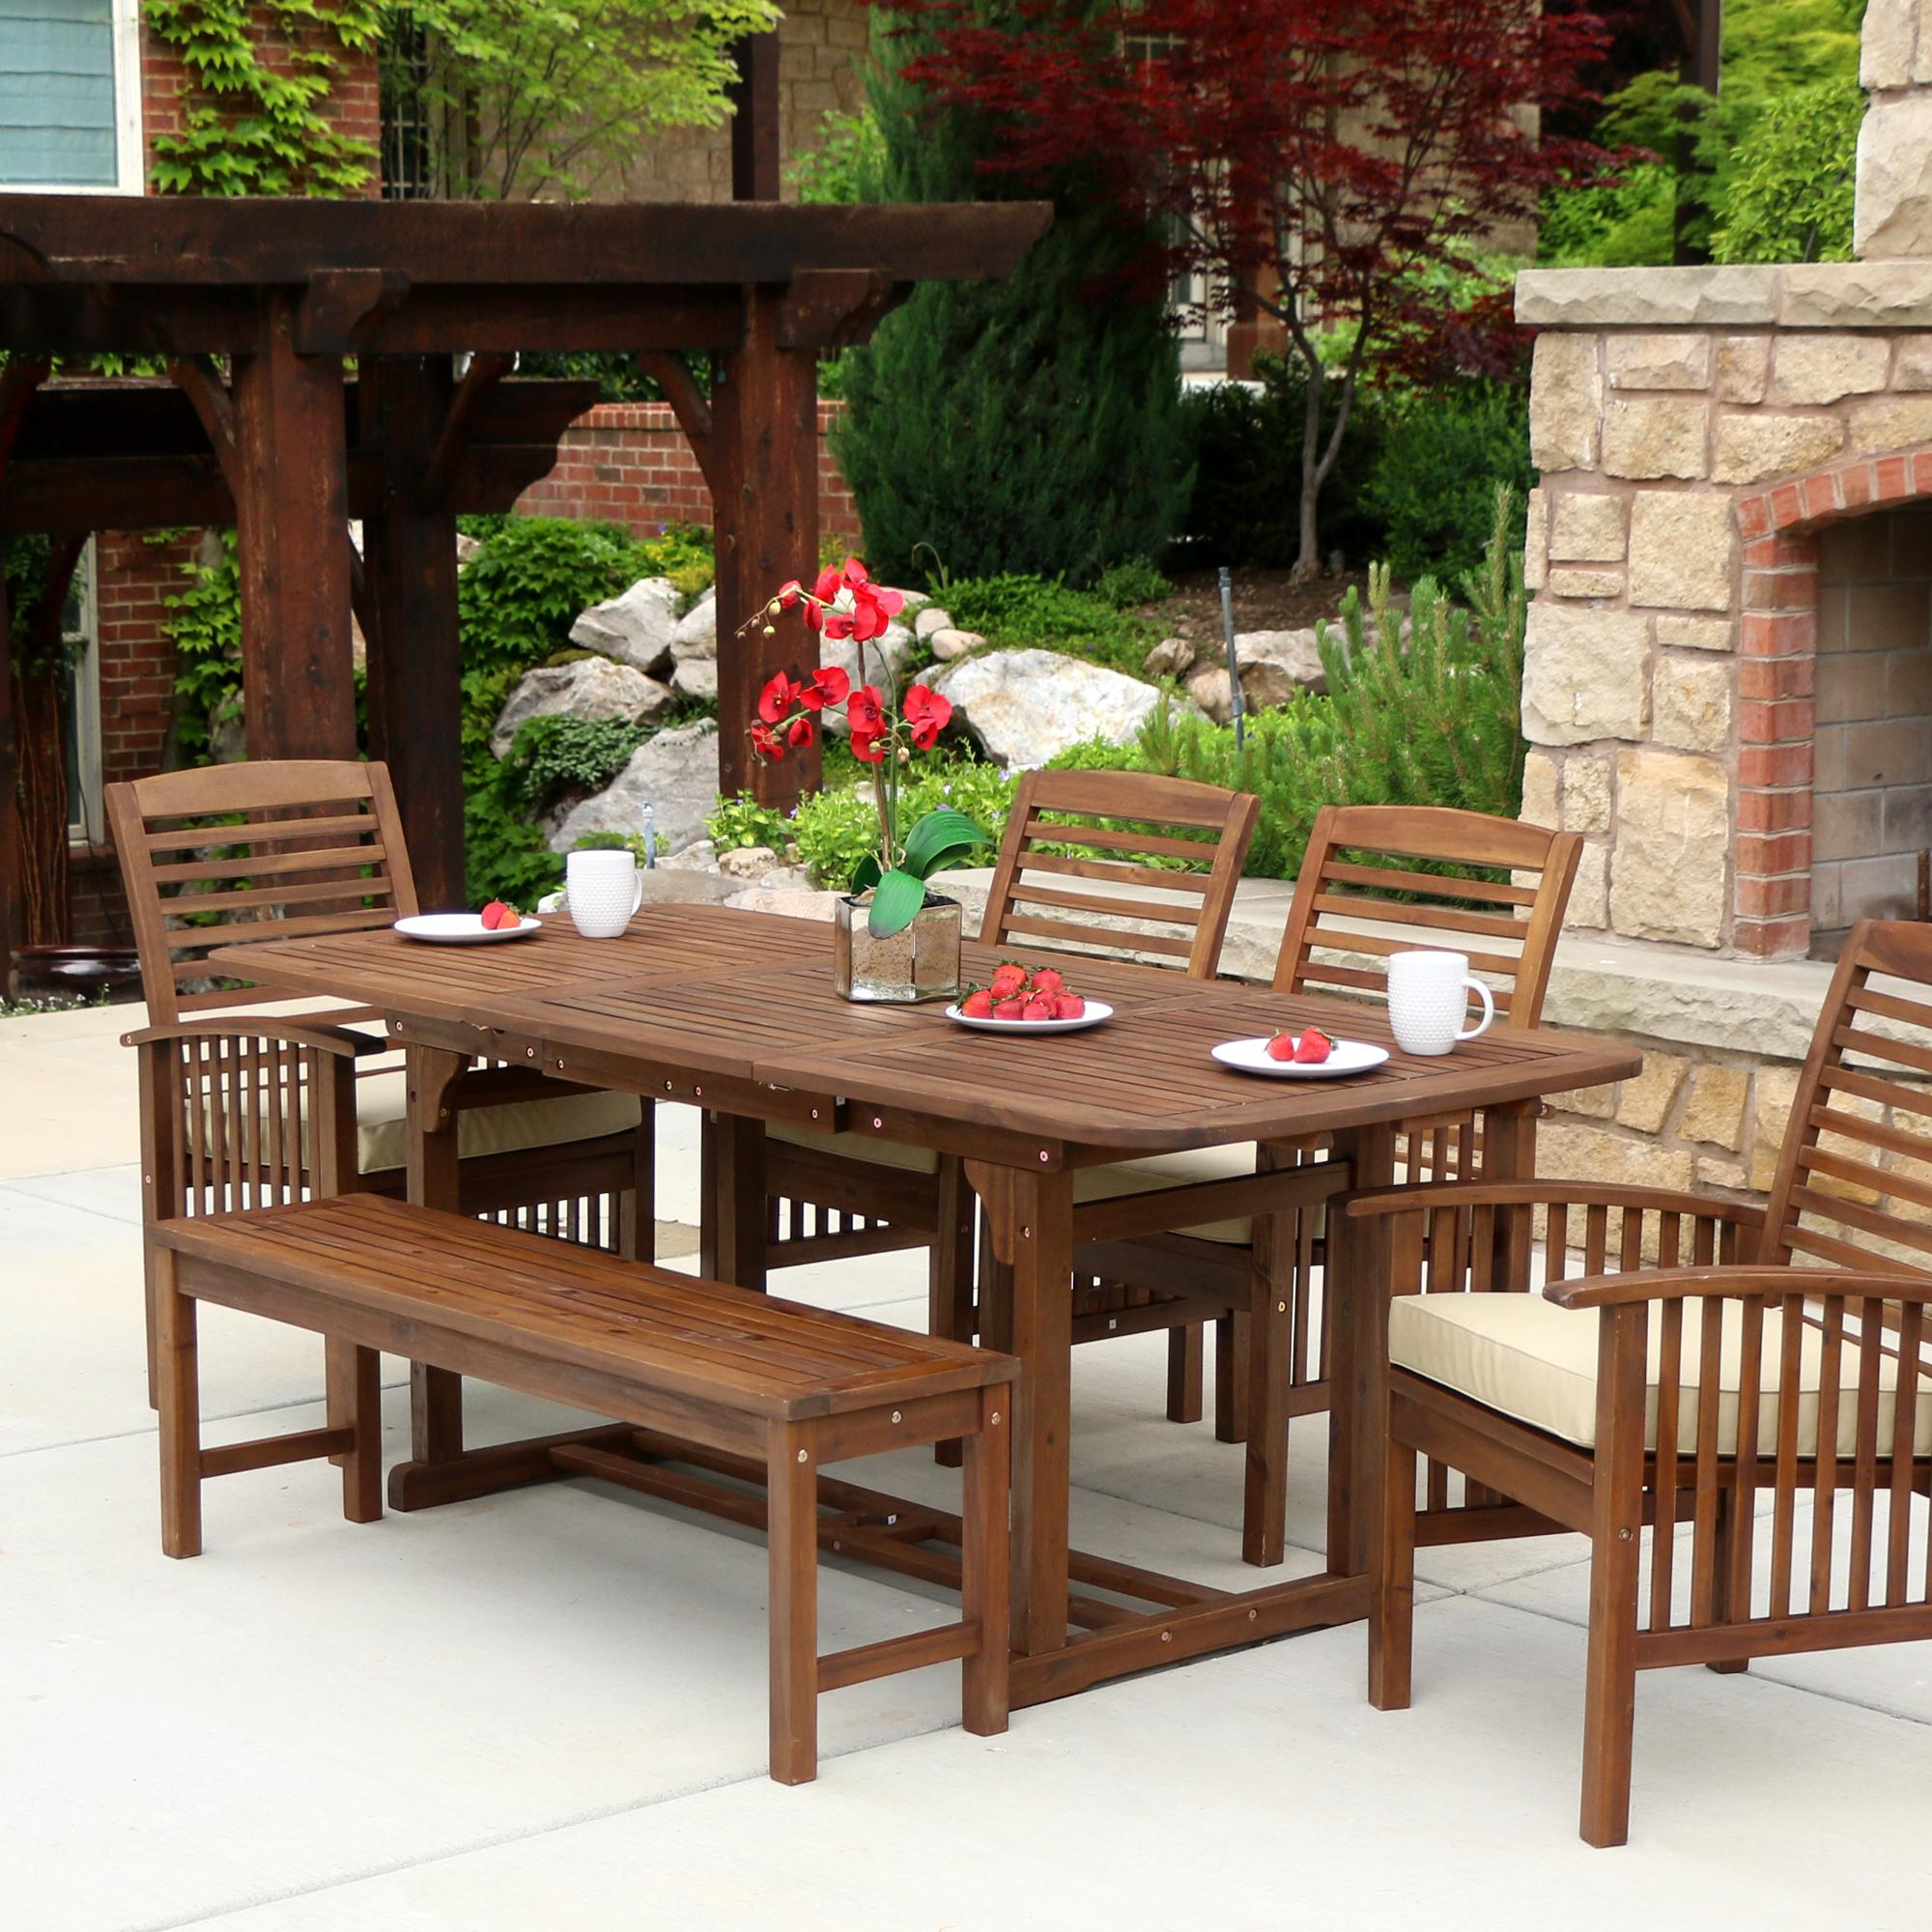 We furniture solid acacia wood 6 piece patio for Wooden outdoor furniture